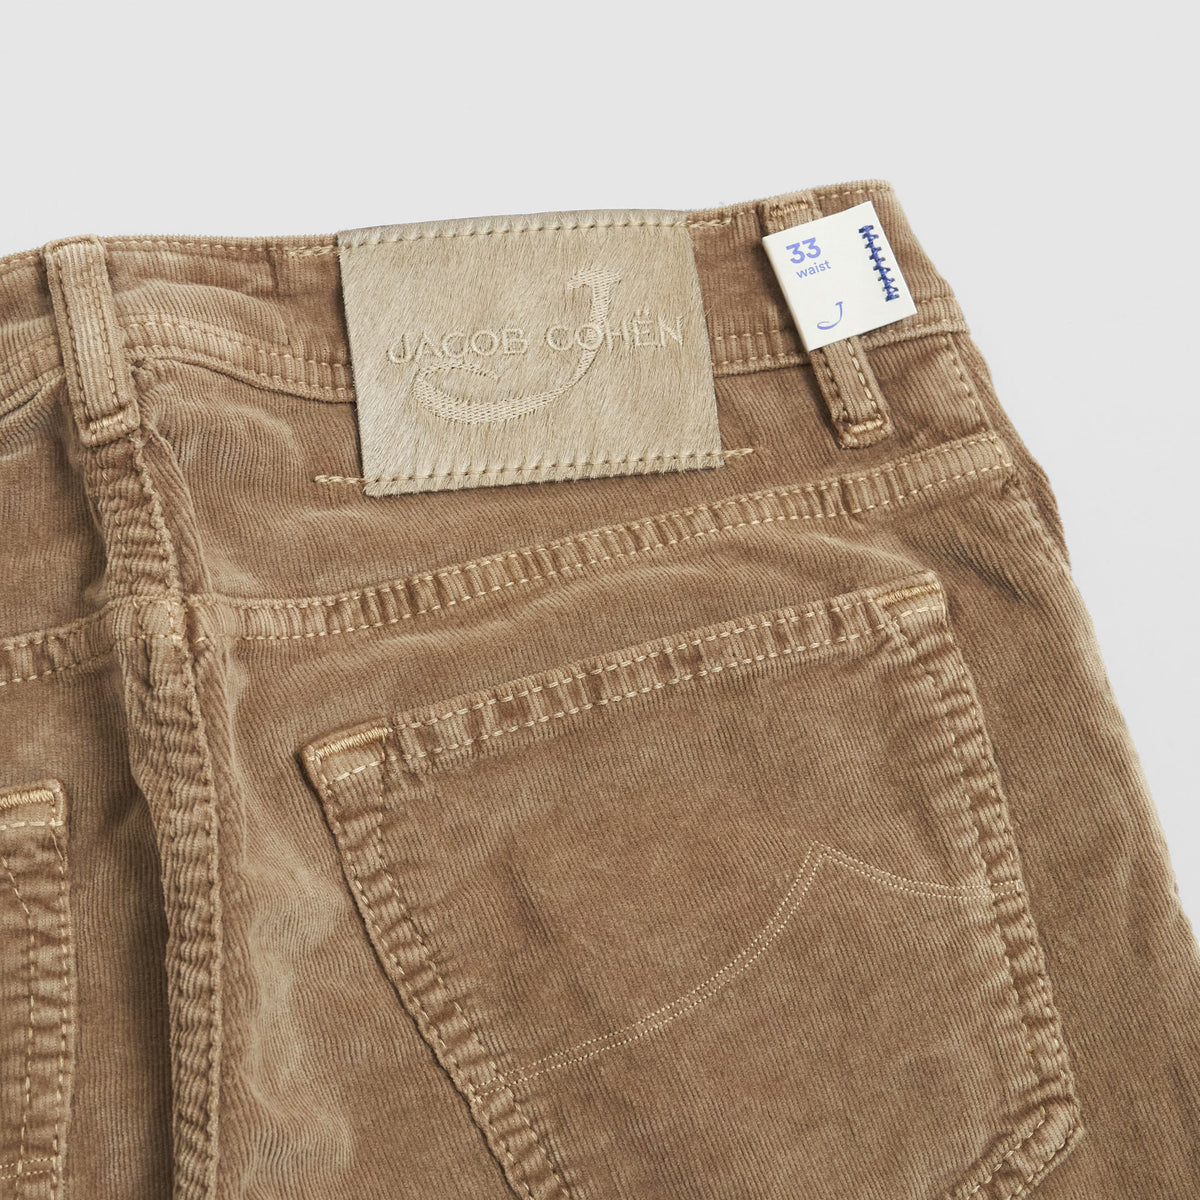 Jacob Cohen Luxury 5 Pocket Corduroy Pants